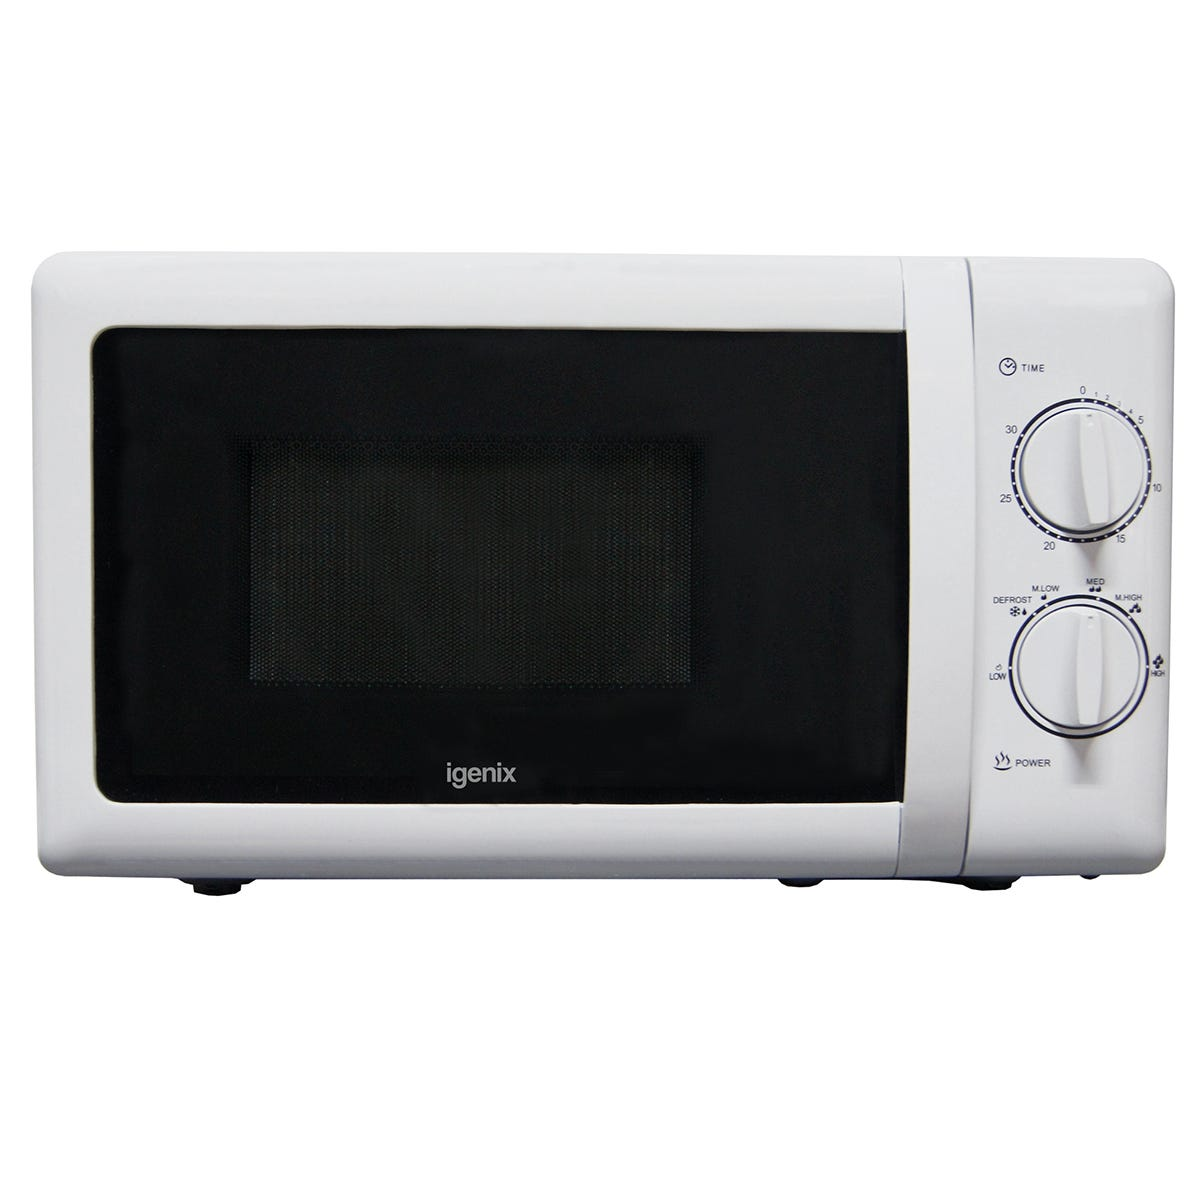 Igenix IG2083 20L 800W Manual Microwave - Stainless Steel/White